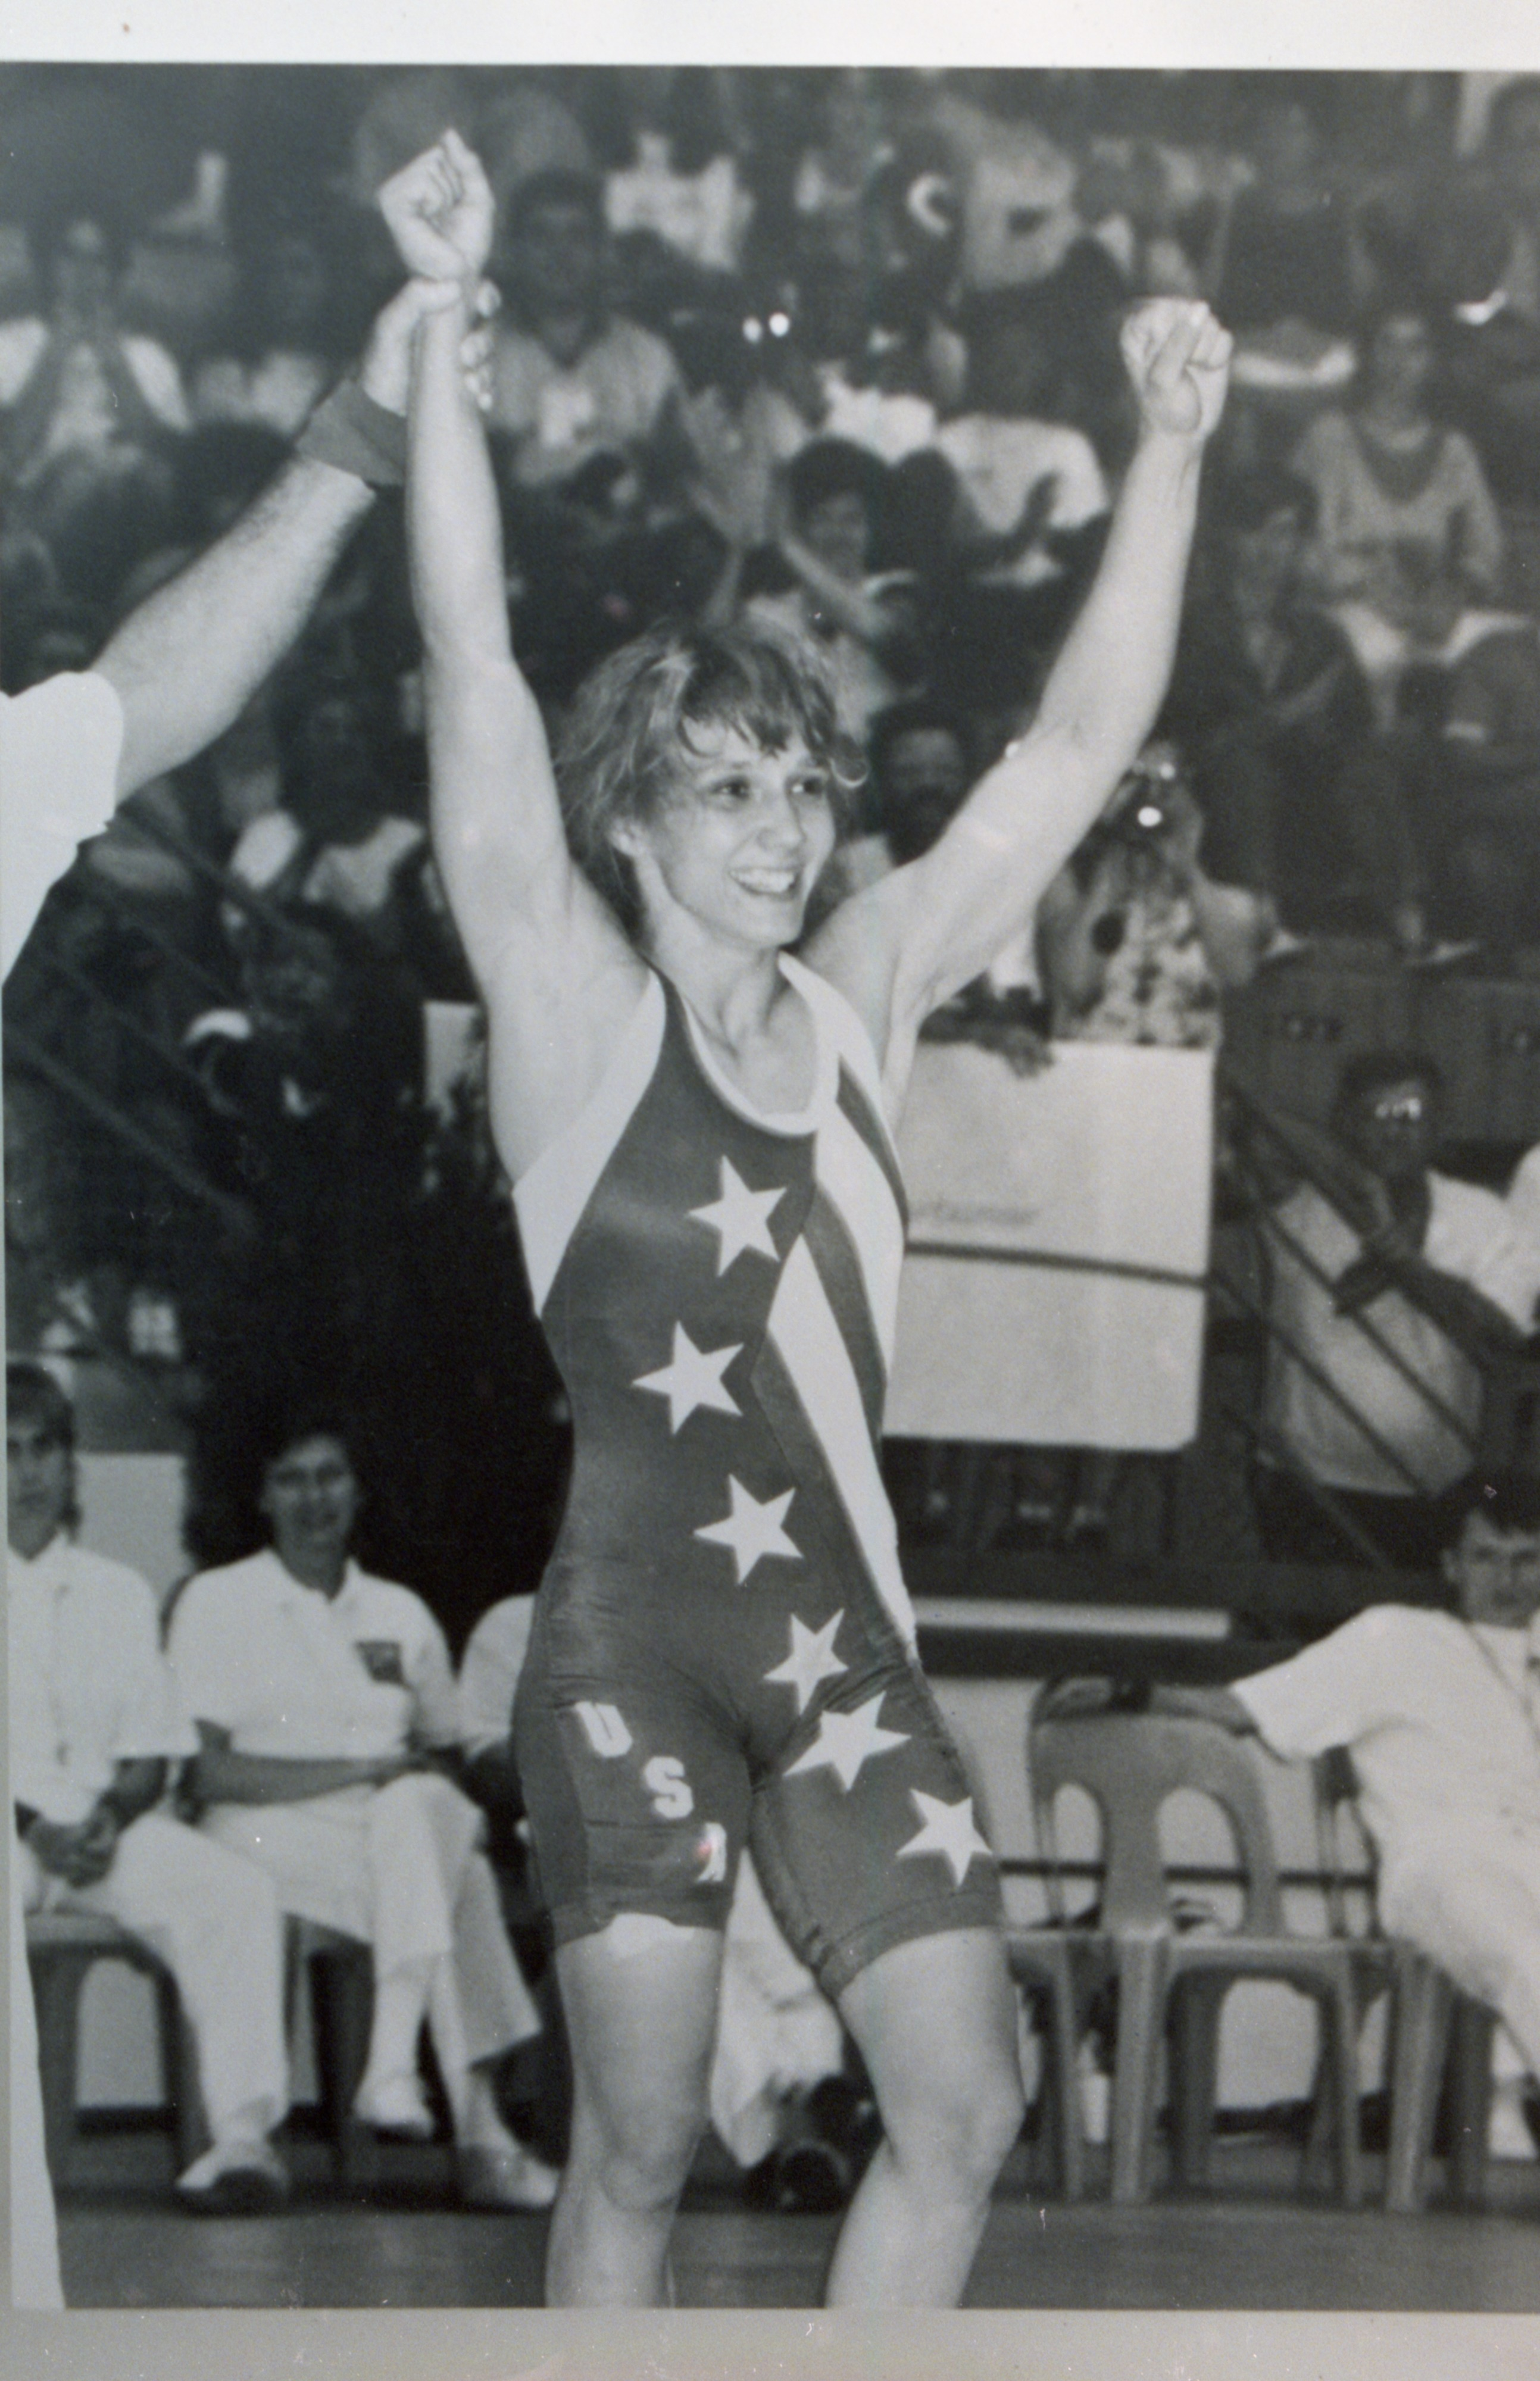 Tricia McNaughton-Saunders, Gold Medalist At The 1992 World Wrestling Championships, Villeurbanne, France (copy) image